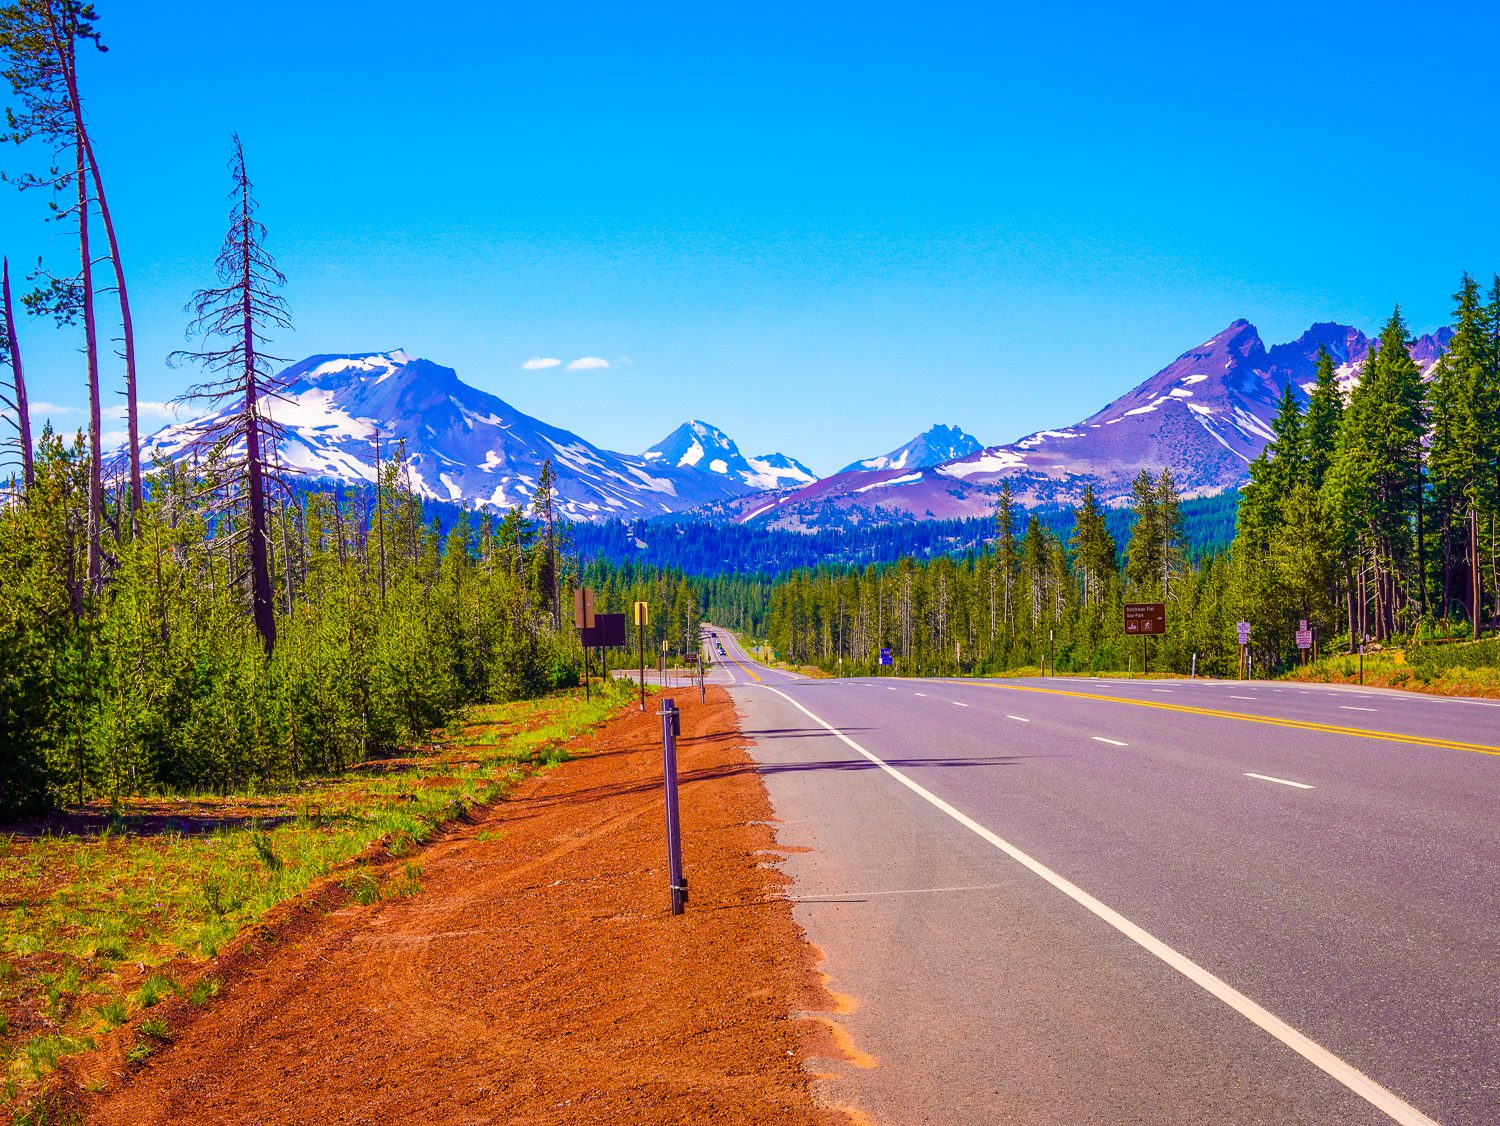 The road to Three Sisters mountains.